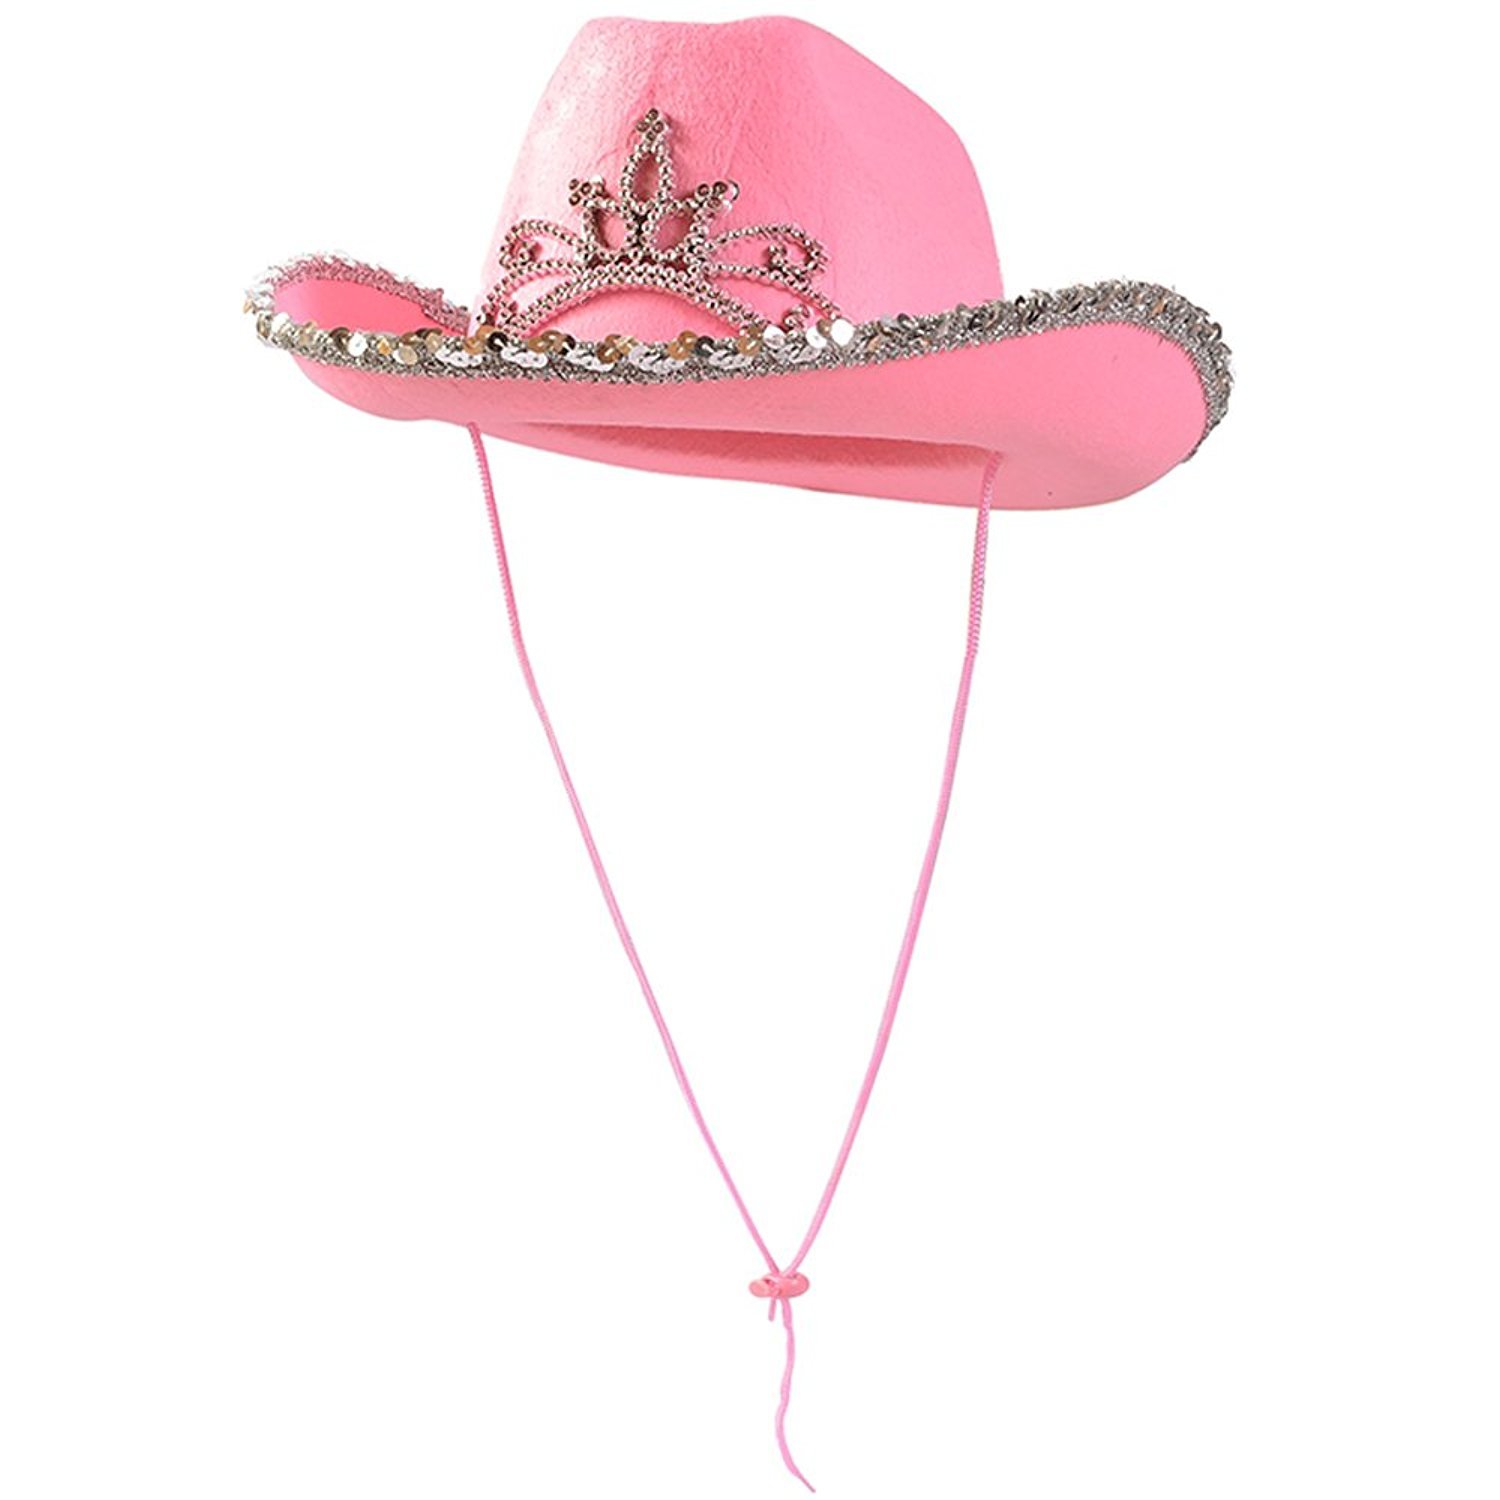 344b65b7a1c Get Quotations · Cowboy Hat - Kids Cowboy Hat - Cowboy Costume Accesssories  - by Funny Party Hats